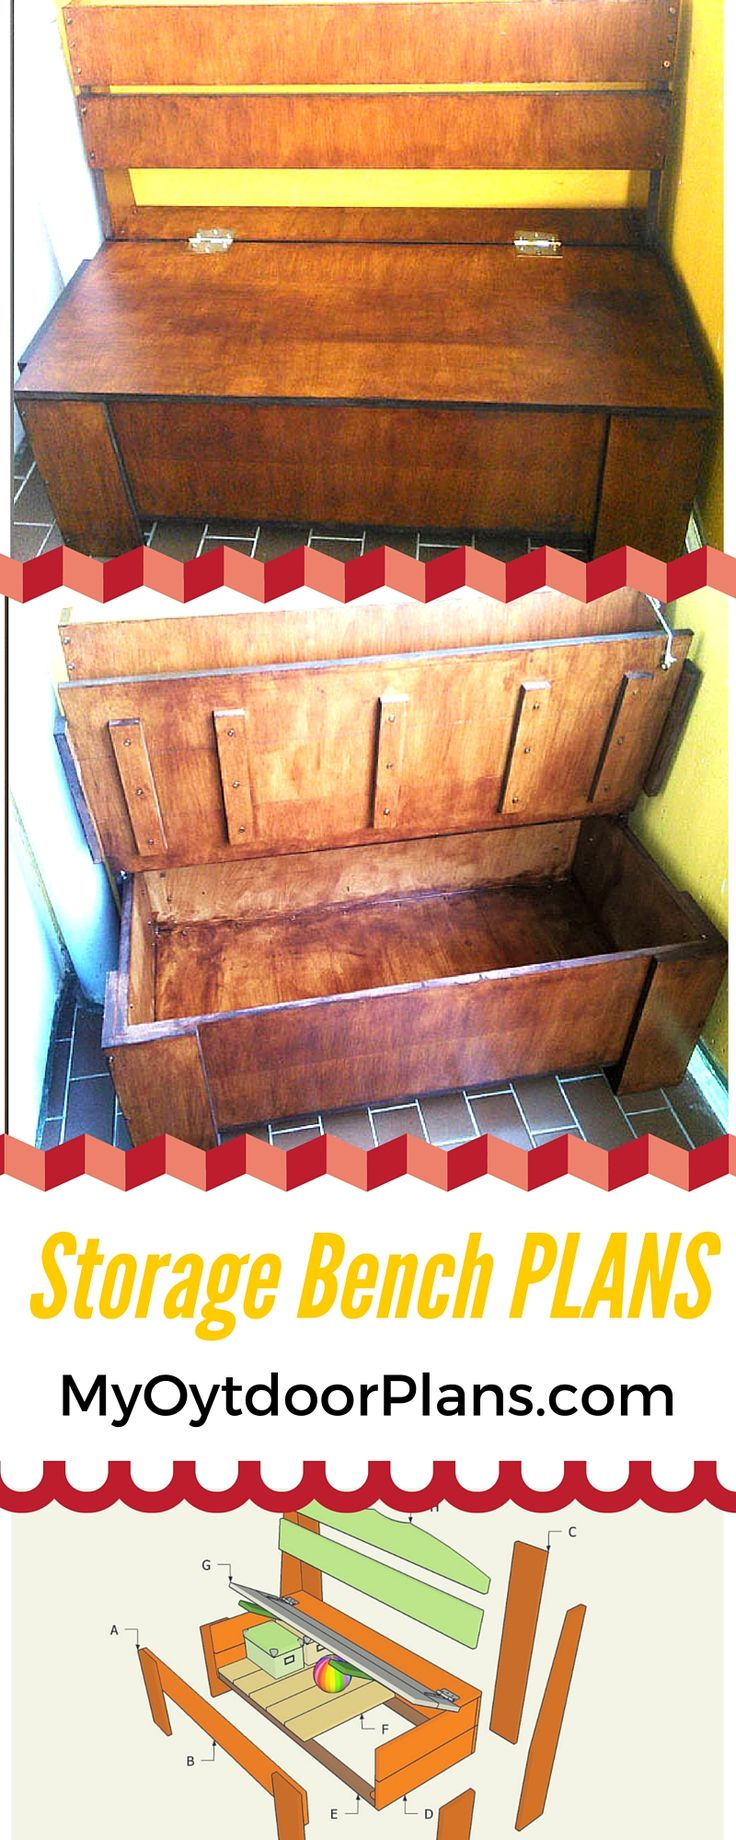 Free outdoor storage bench plans - Step by step instructions and guidelines for you to learn how to build a storage bench in just a few hours! myoutdoorplans.com #diy #bench